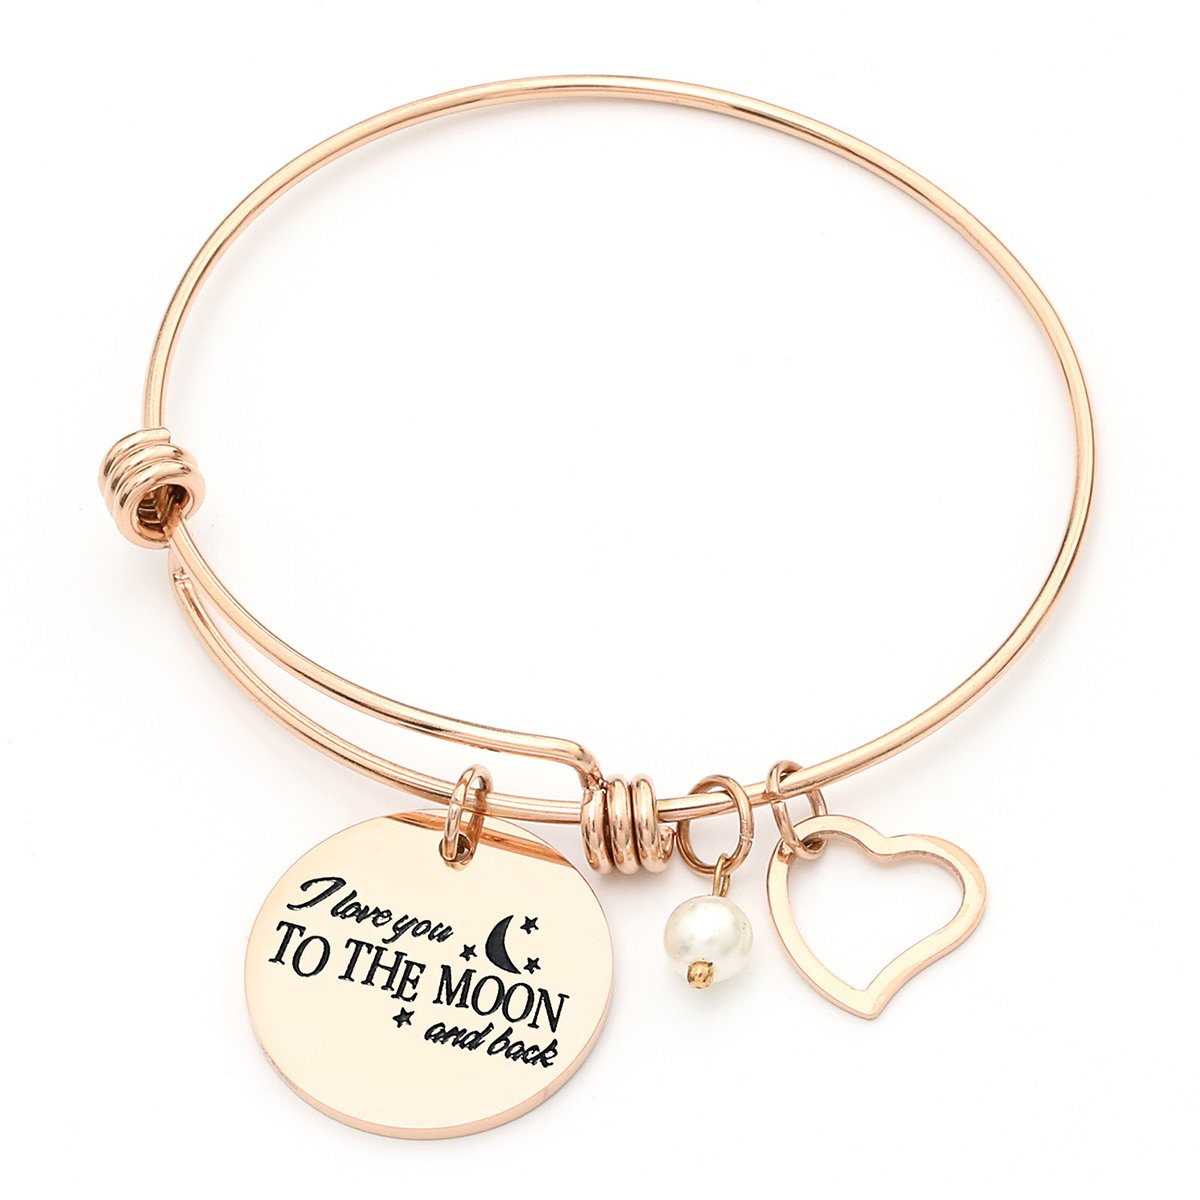 MONASOC Charm Bracelet i love you to the moon and back Expandable Pearl Bangle Gift jewerly For Women Girl Sister Mother Friends by MONASOC (Image #1)